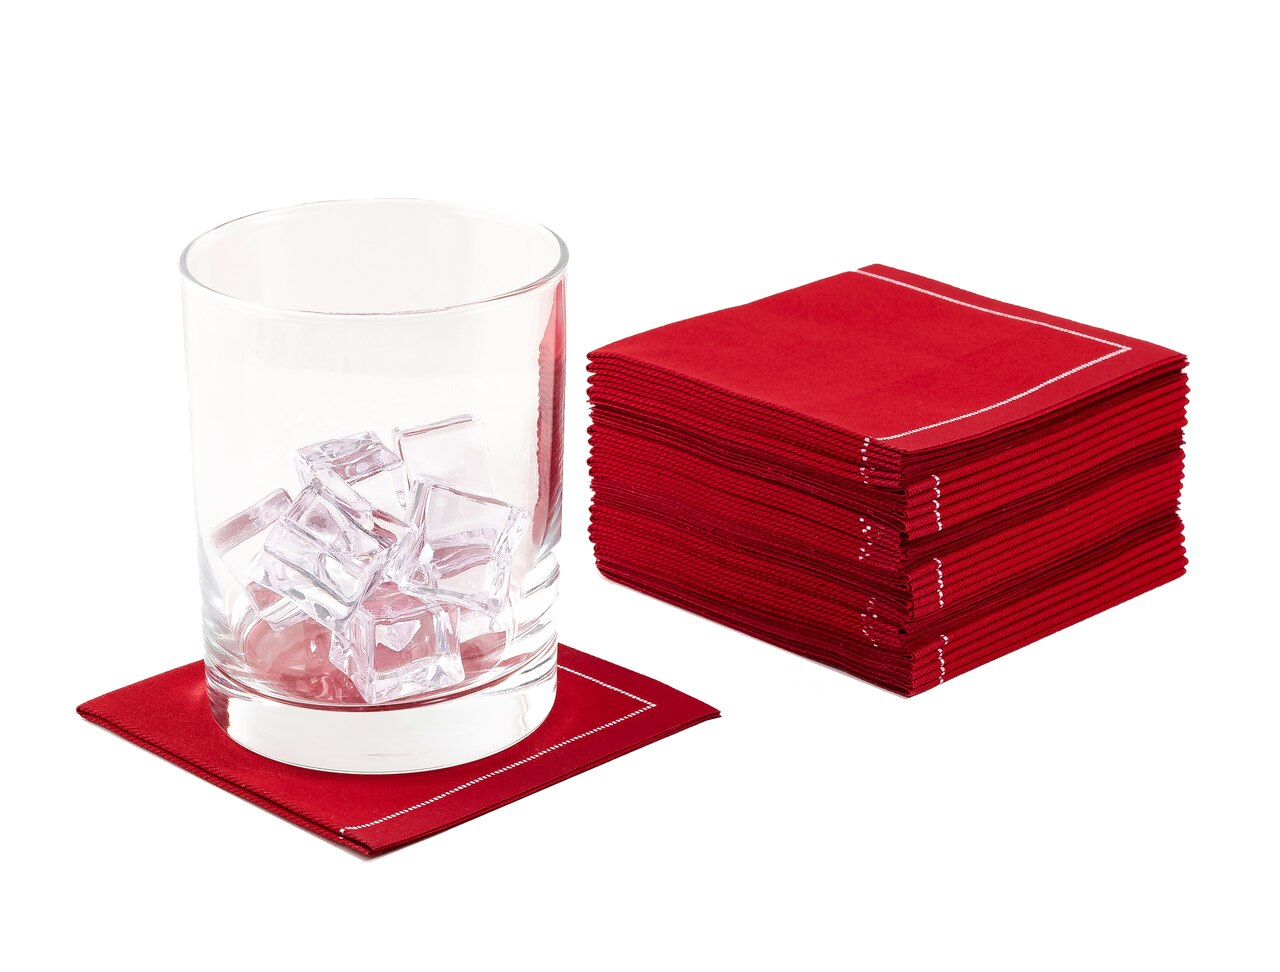 "Red Cotton 1/4 Fold Cocktail Premium - 8"" x 8"" (folded 4"" x 4"") - 30 units"